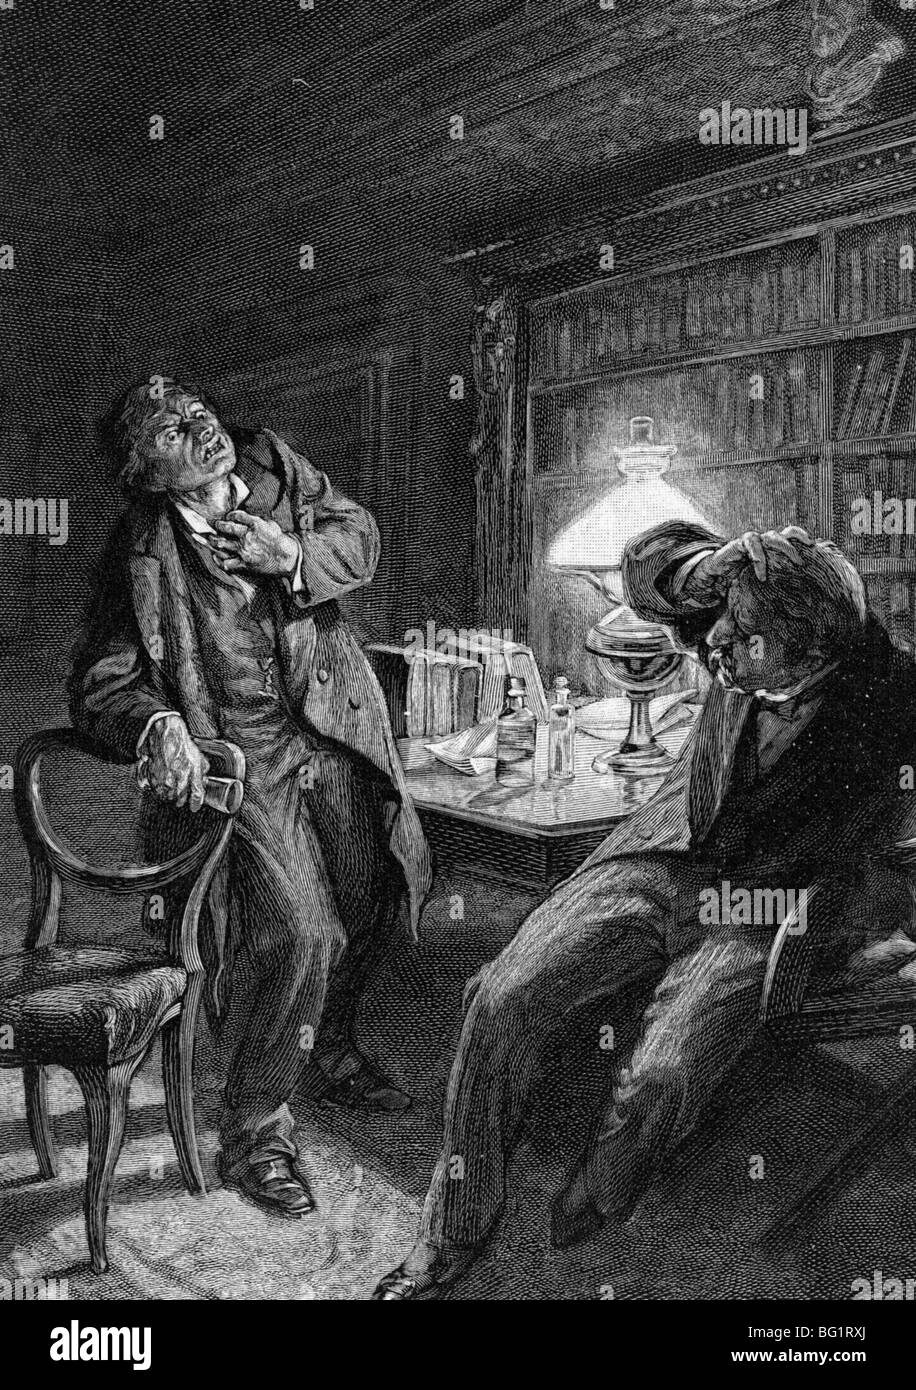 the strange case of dr jekyll mr hyde essay Below is a free excerpt of dr jekyll and mr hyde - duality in human nature essay from anti essays, your the strange case of dr jekyll and mr hyde immediately indicates the distinction between the two main characters and make the reader suspicious dr jekyll and mr hyde - duality.